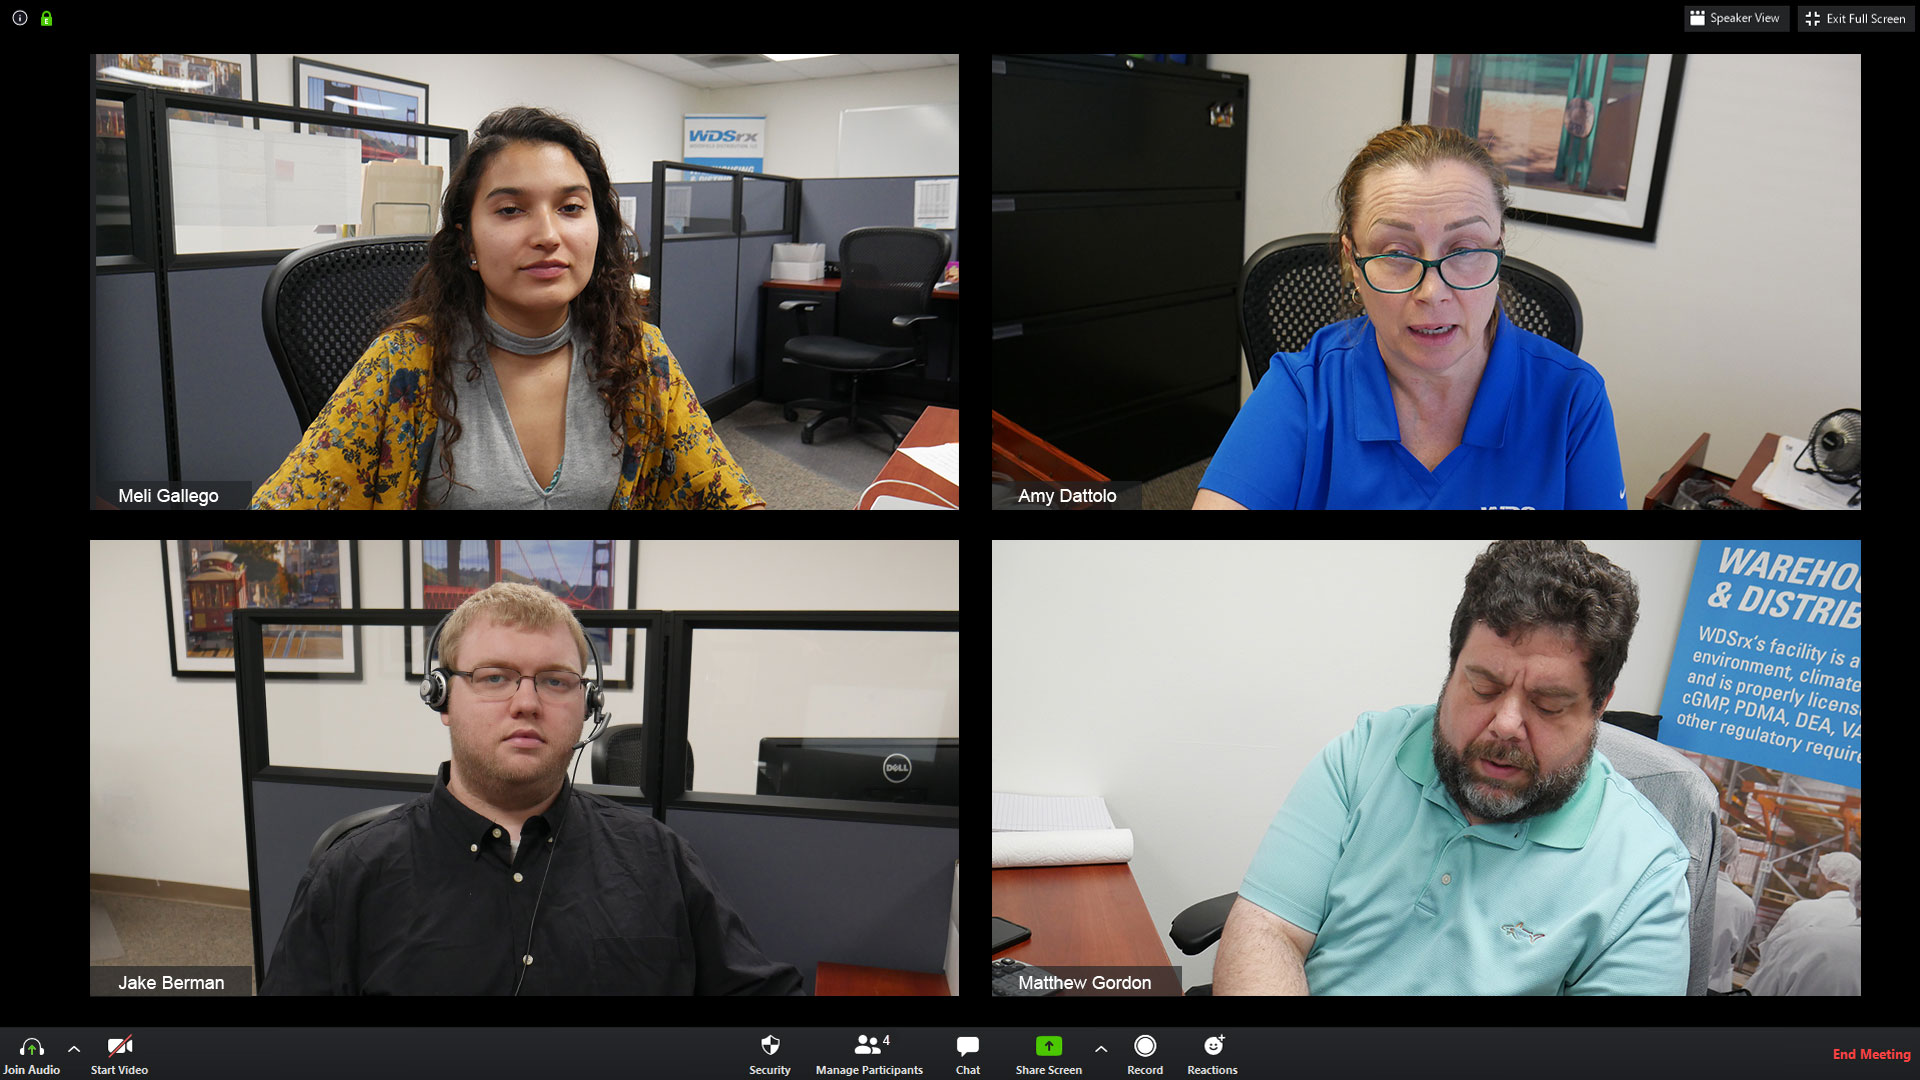 To maintain business continuity, employees work together over video calls in the office